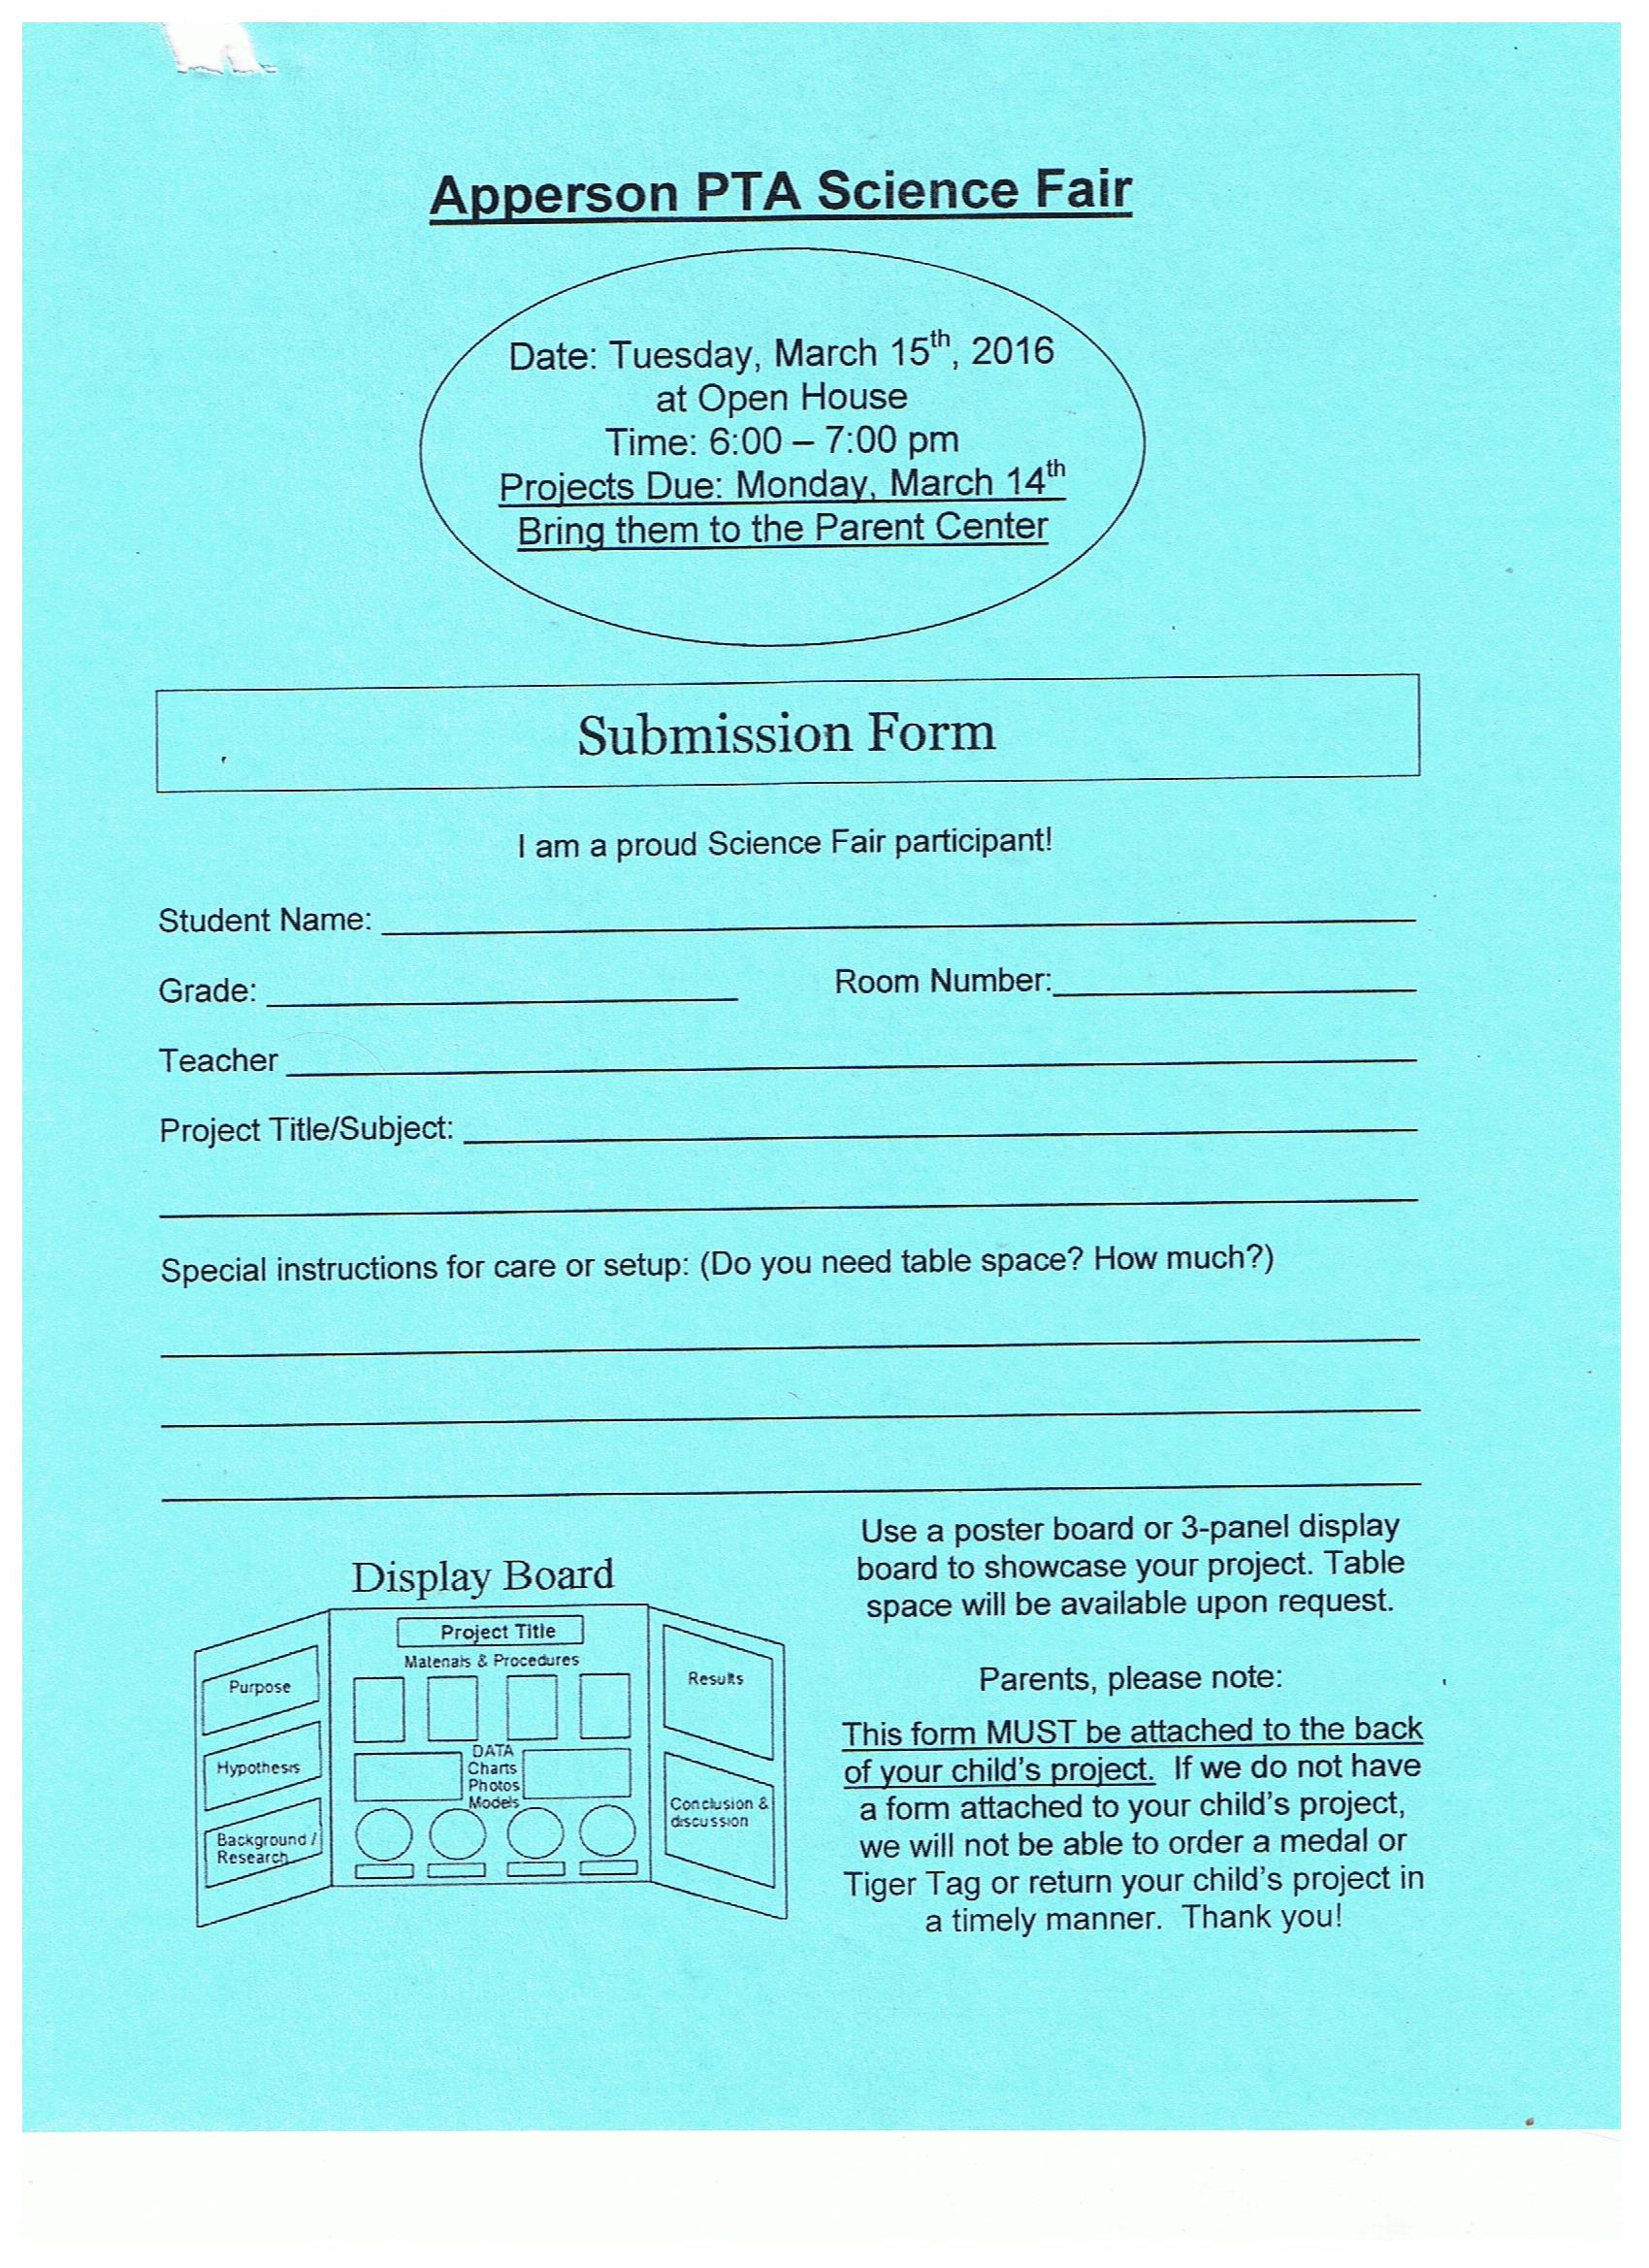 apperson pta page 6 science fair 2016 submission form